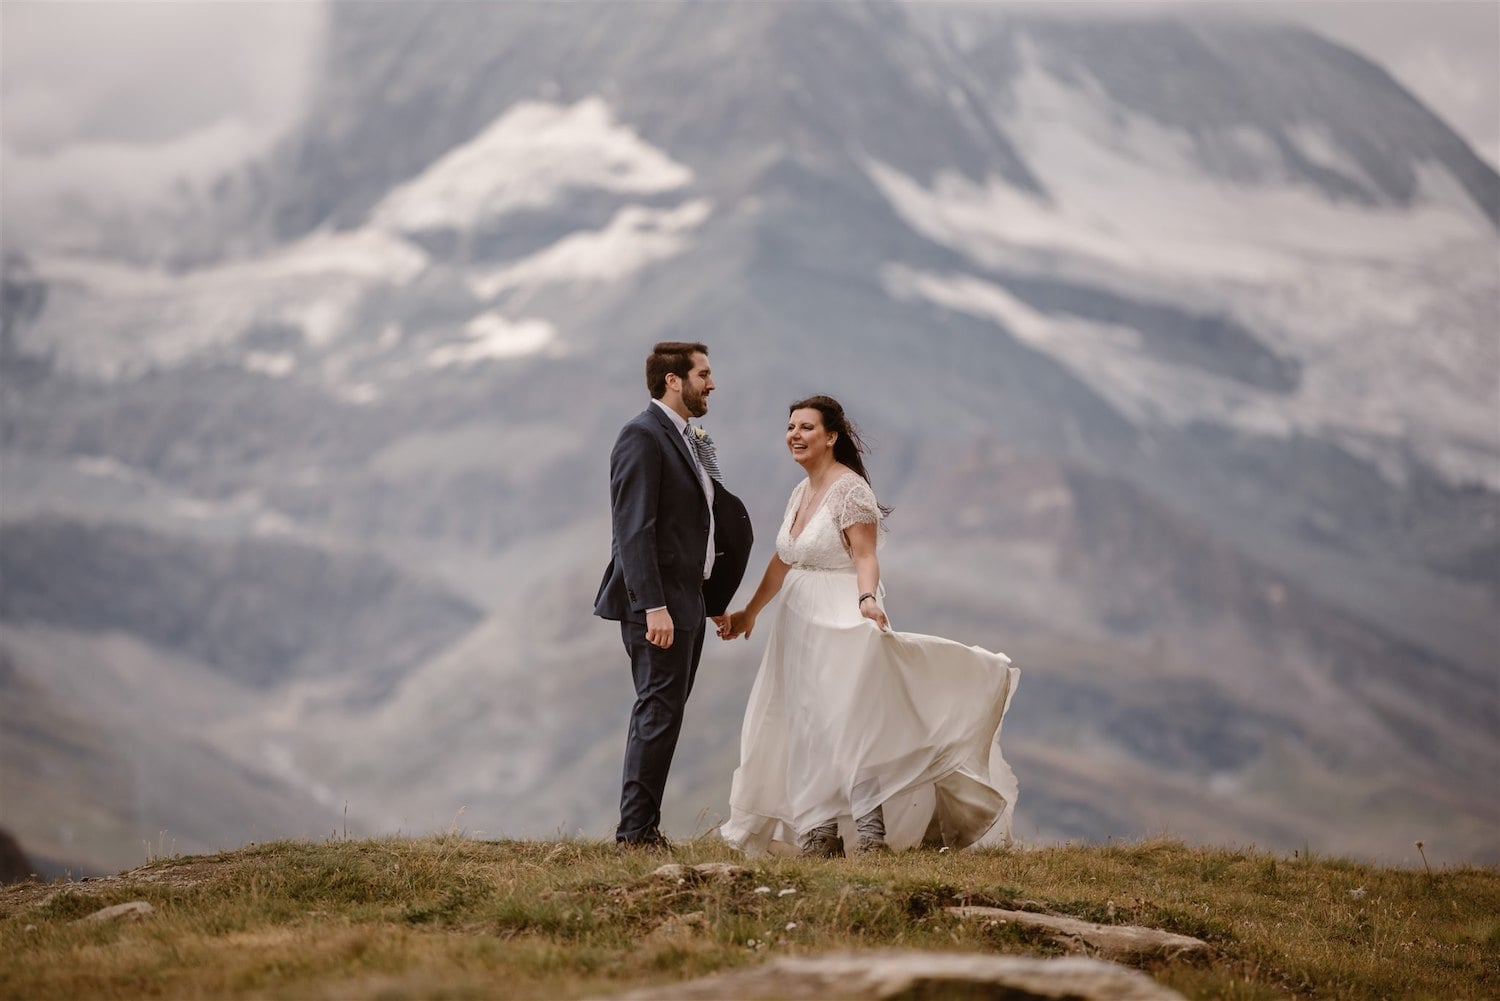 Couple in love in Zermatt